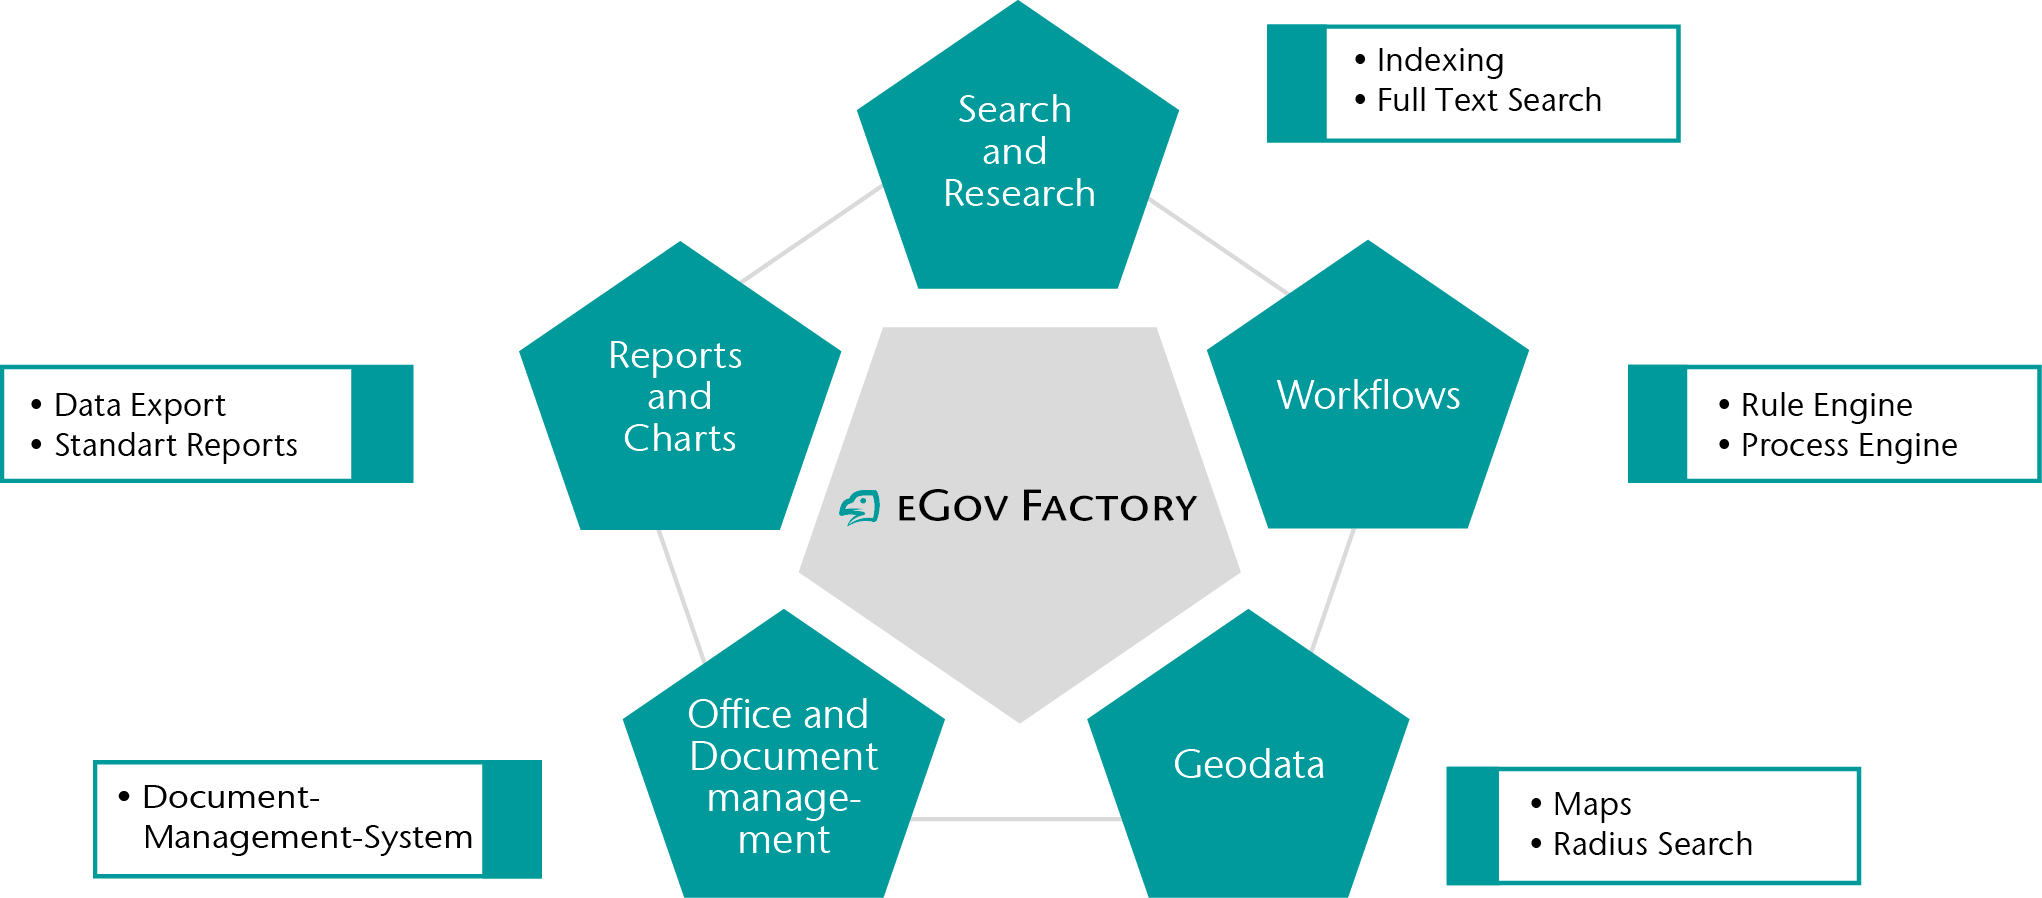 Modules of CONET´s eGov Factory - research, workflows, geodata, office, documents, reports